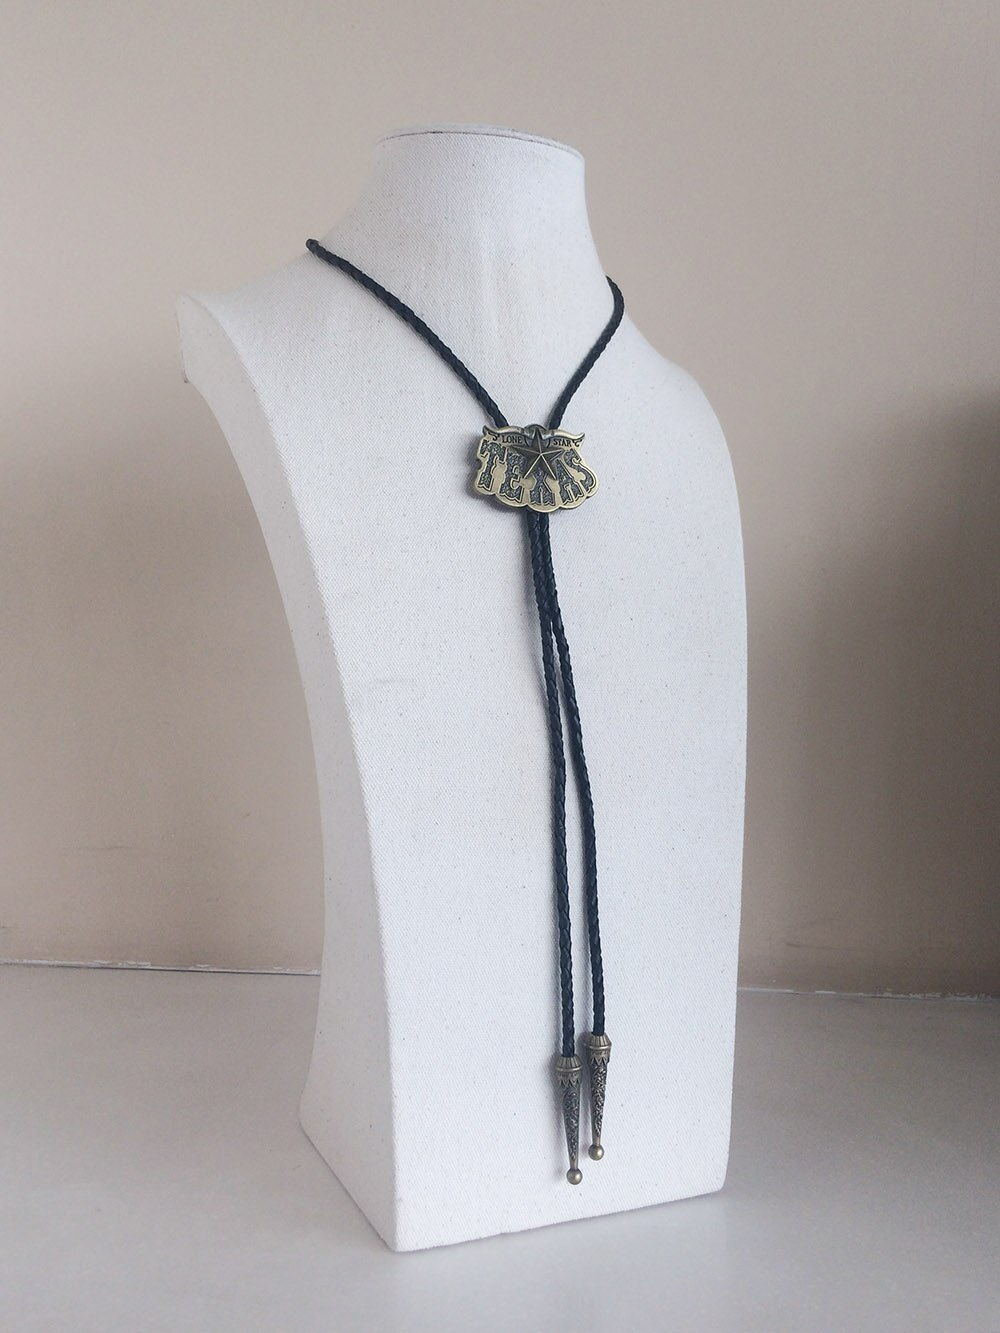 Retail New Vintage Bronze Plated Long Horn Bull Star Western Wedding Bolo Tie Leather Necklace Free Shipping BOLOTIE-WT026AB